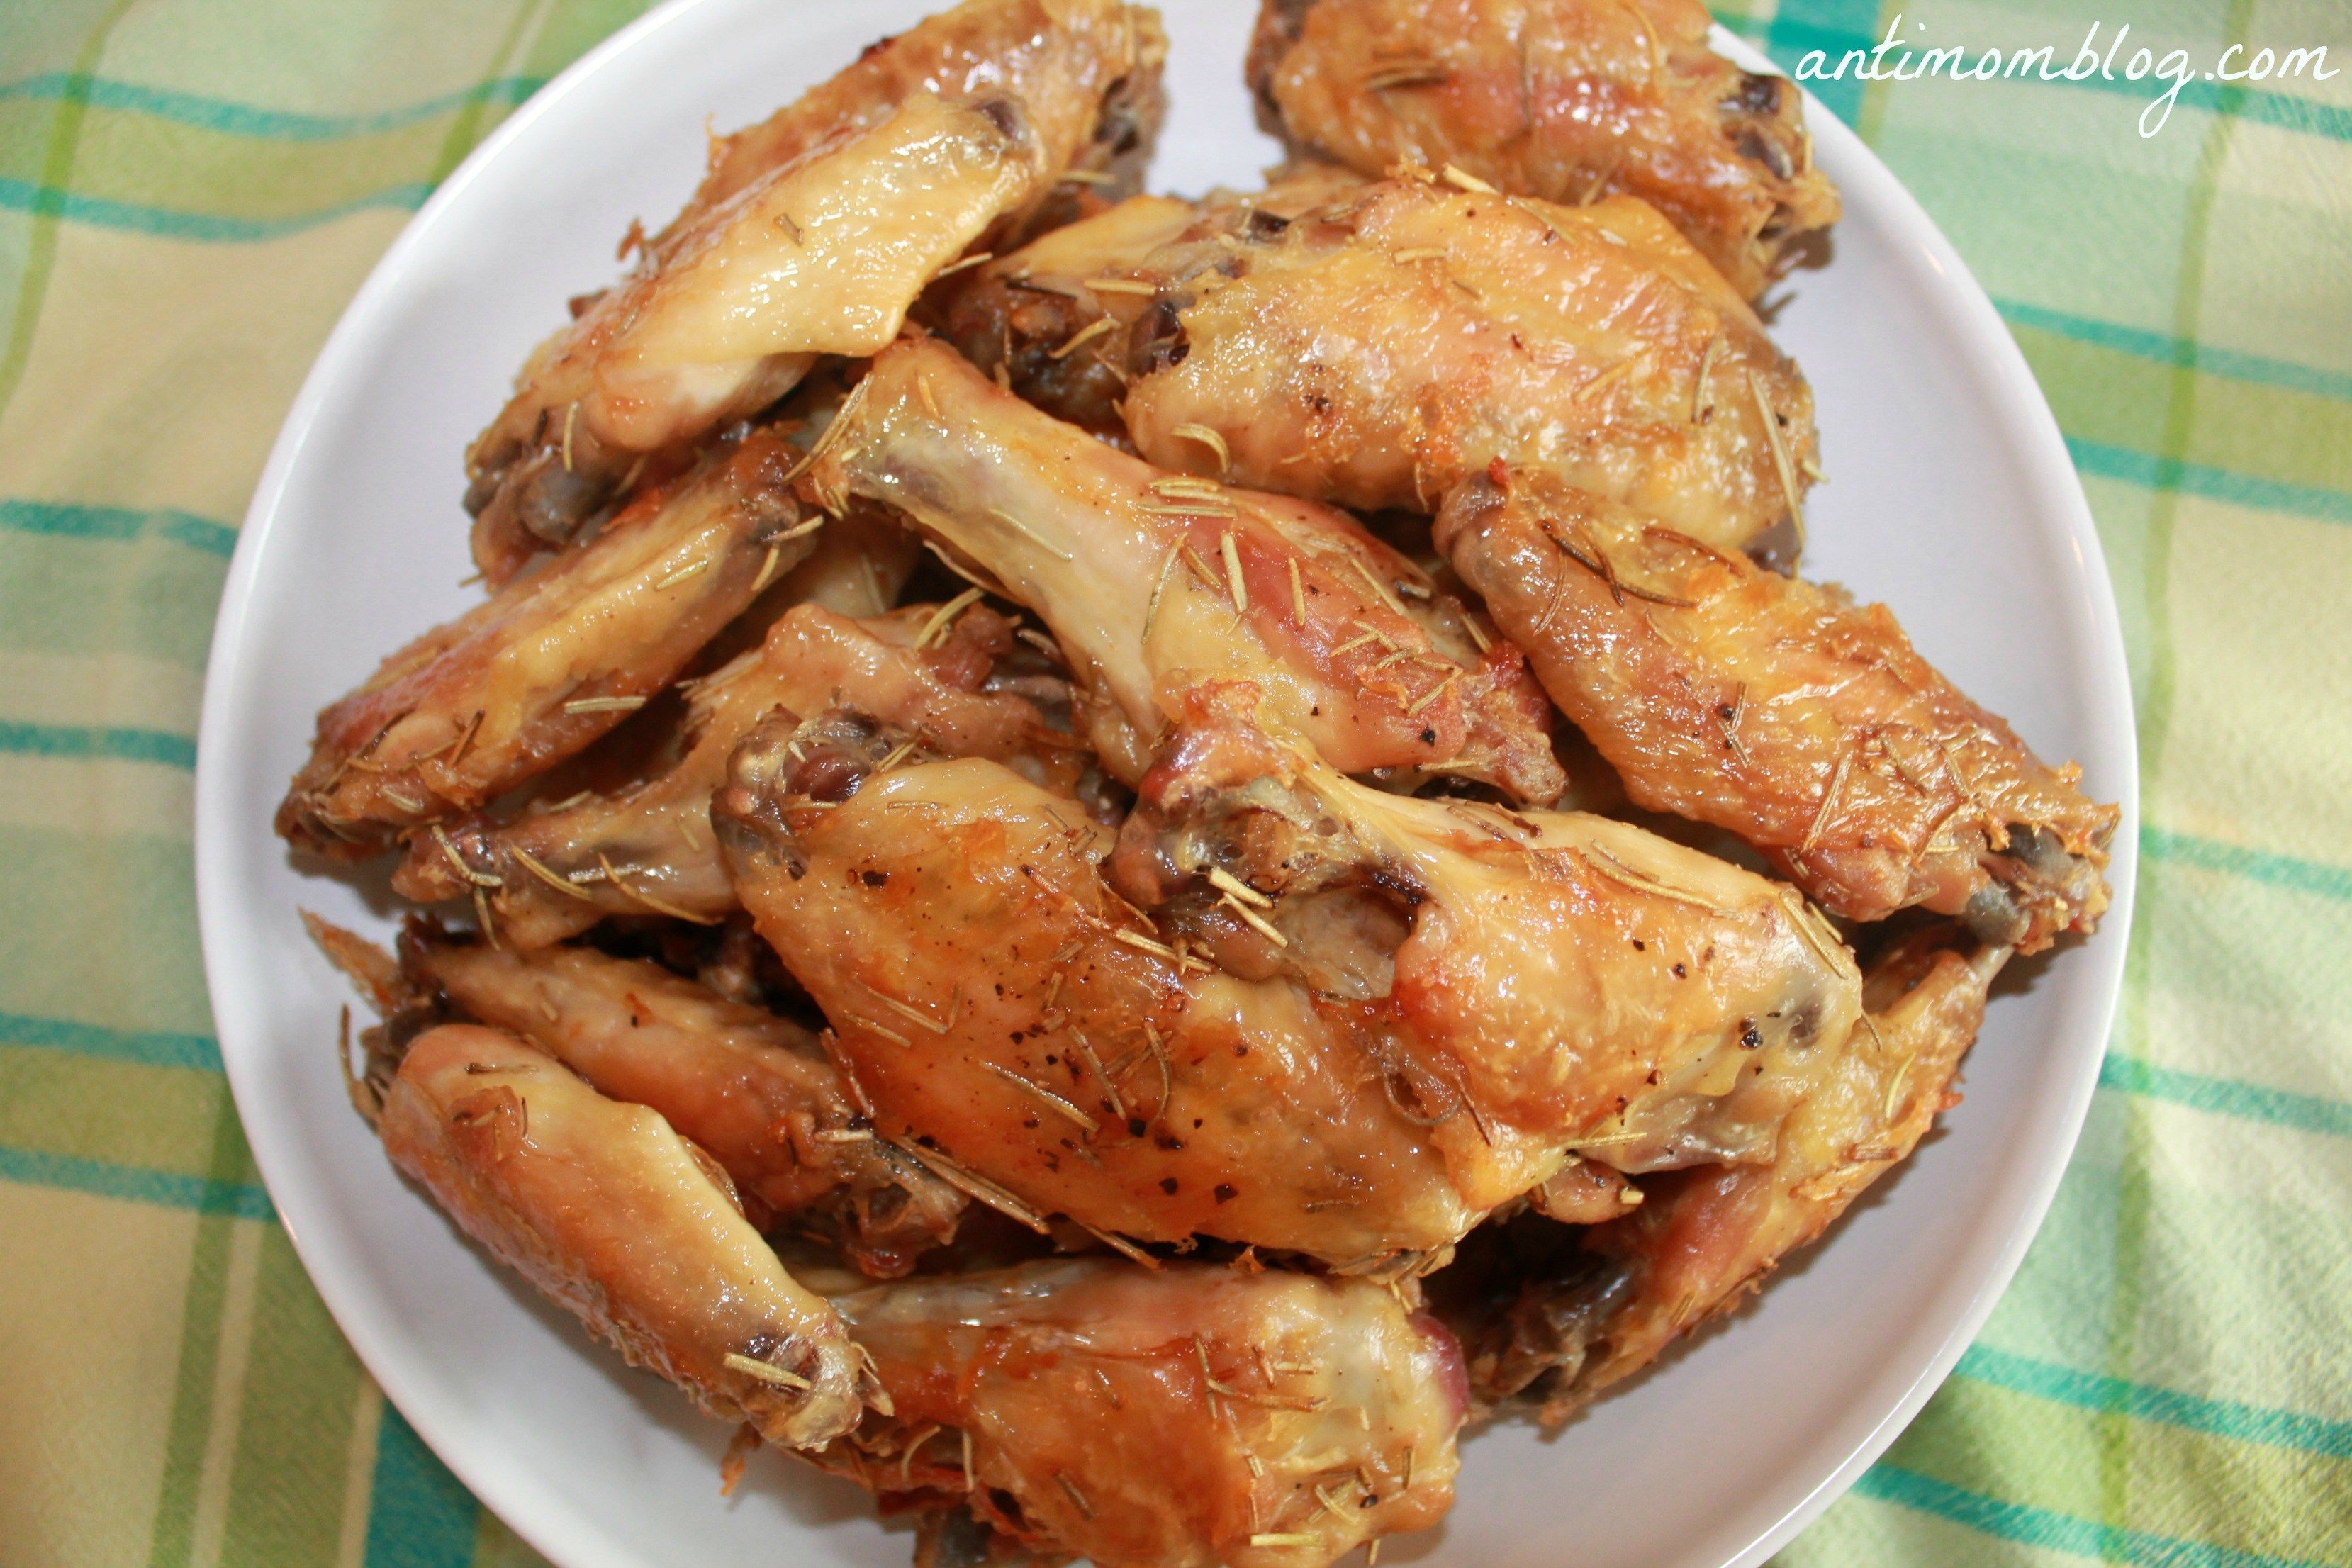 Restaurant Remake Anthony S Coal Fired Pizza Wings Recipe Crispy And Full Of Herbs That Is Baked Not Chicken Wing Recipes Wings Recipe Baked Chicken Recipes